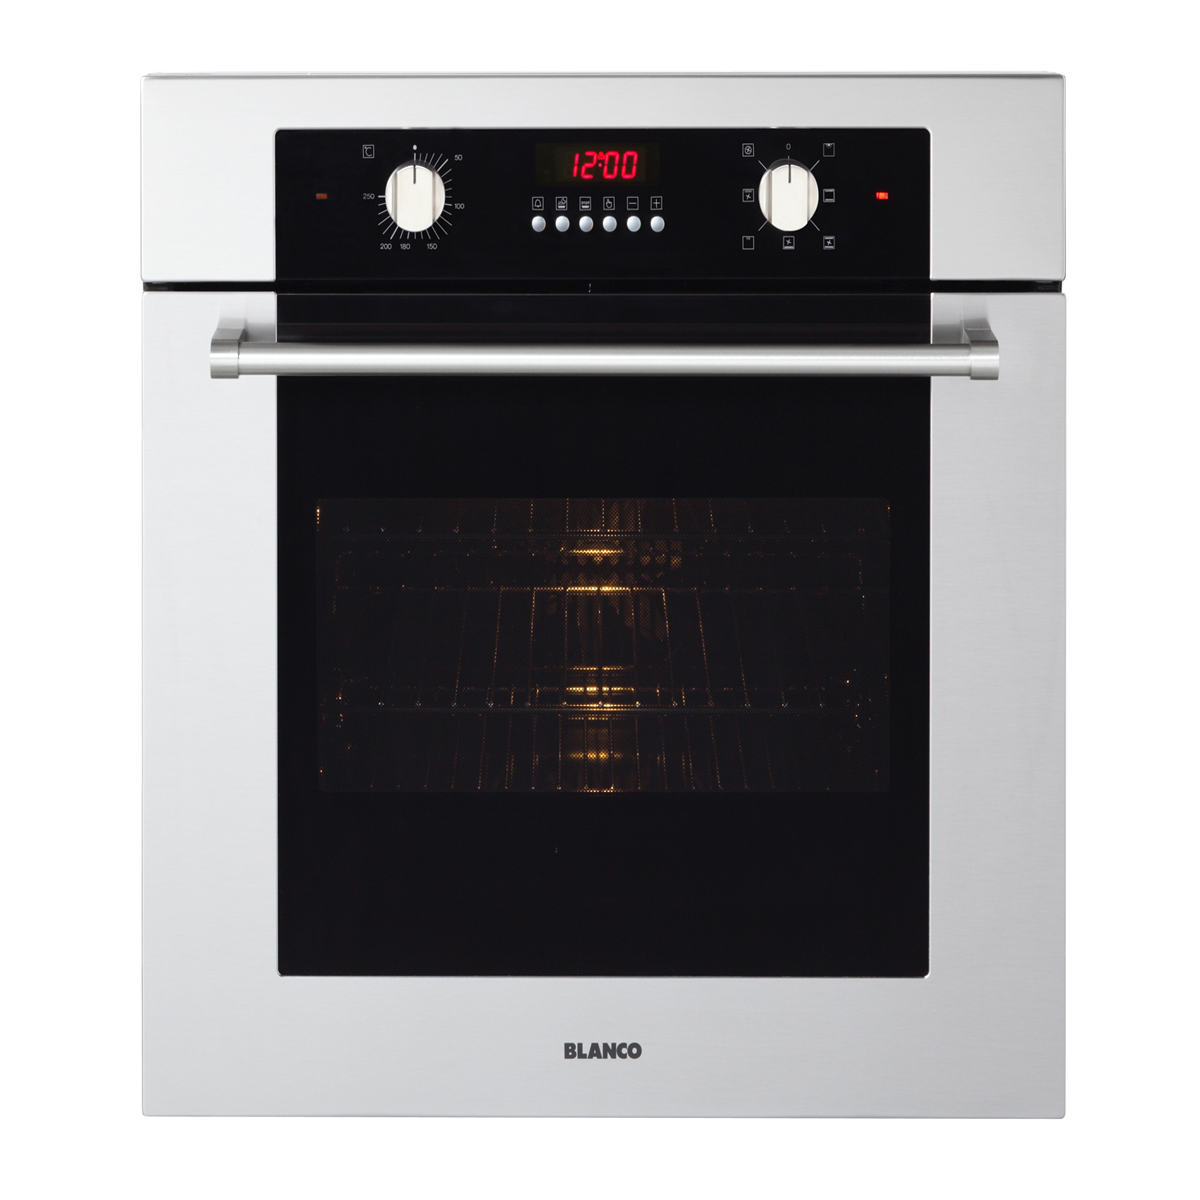 Blanco BOSE607M Electric Wall Oven